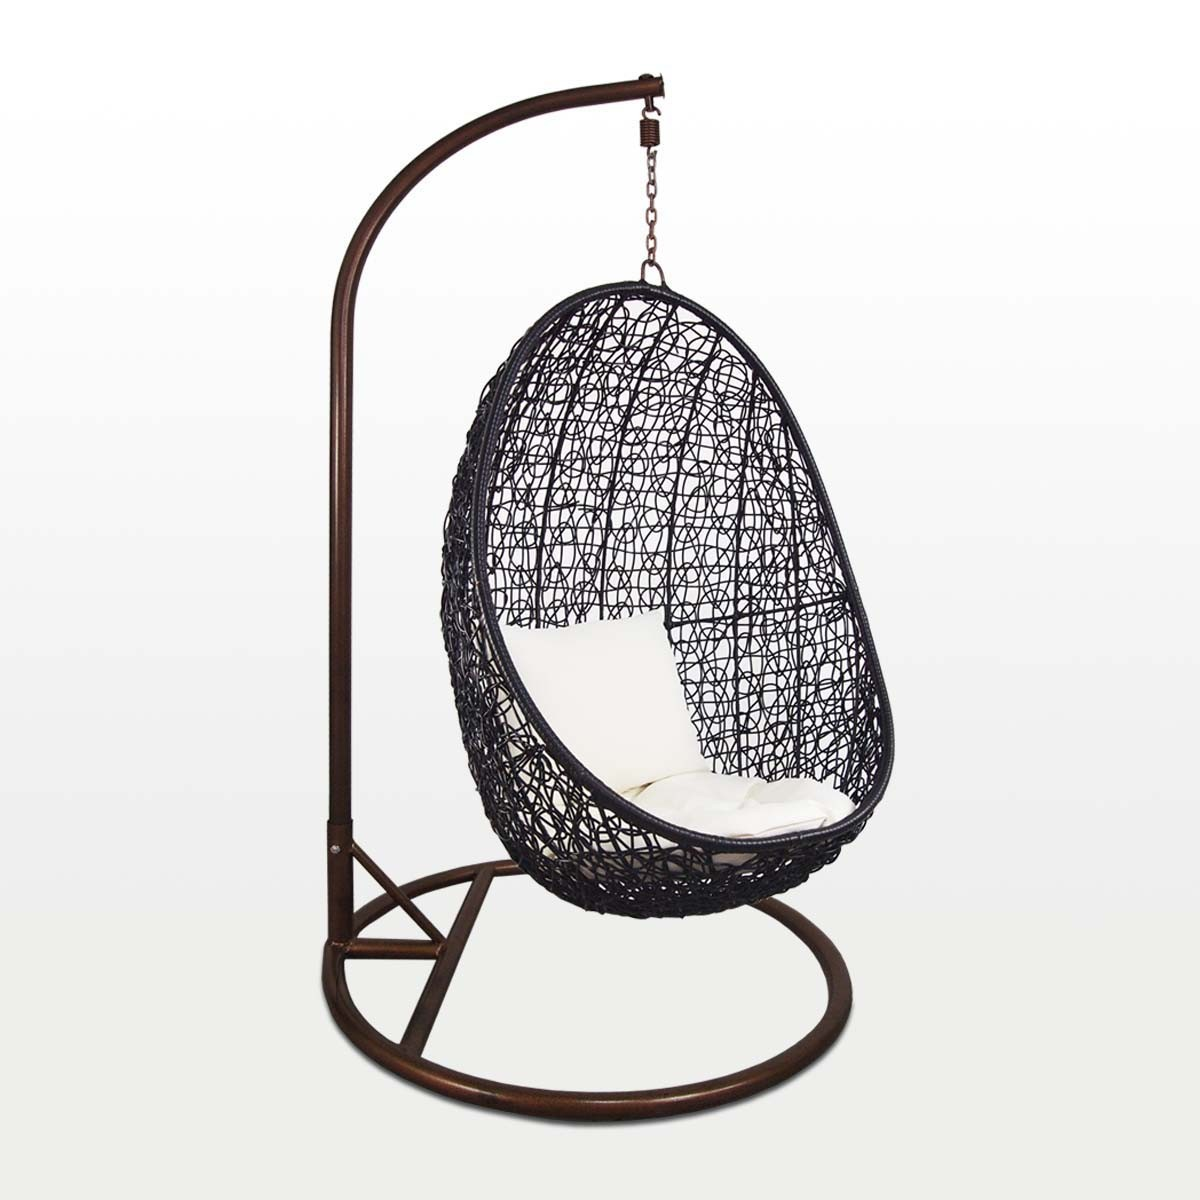 Superbe Black Cocoon Swing Chair, White Cushion